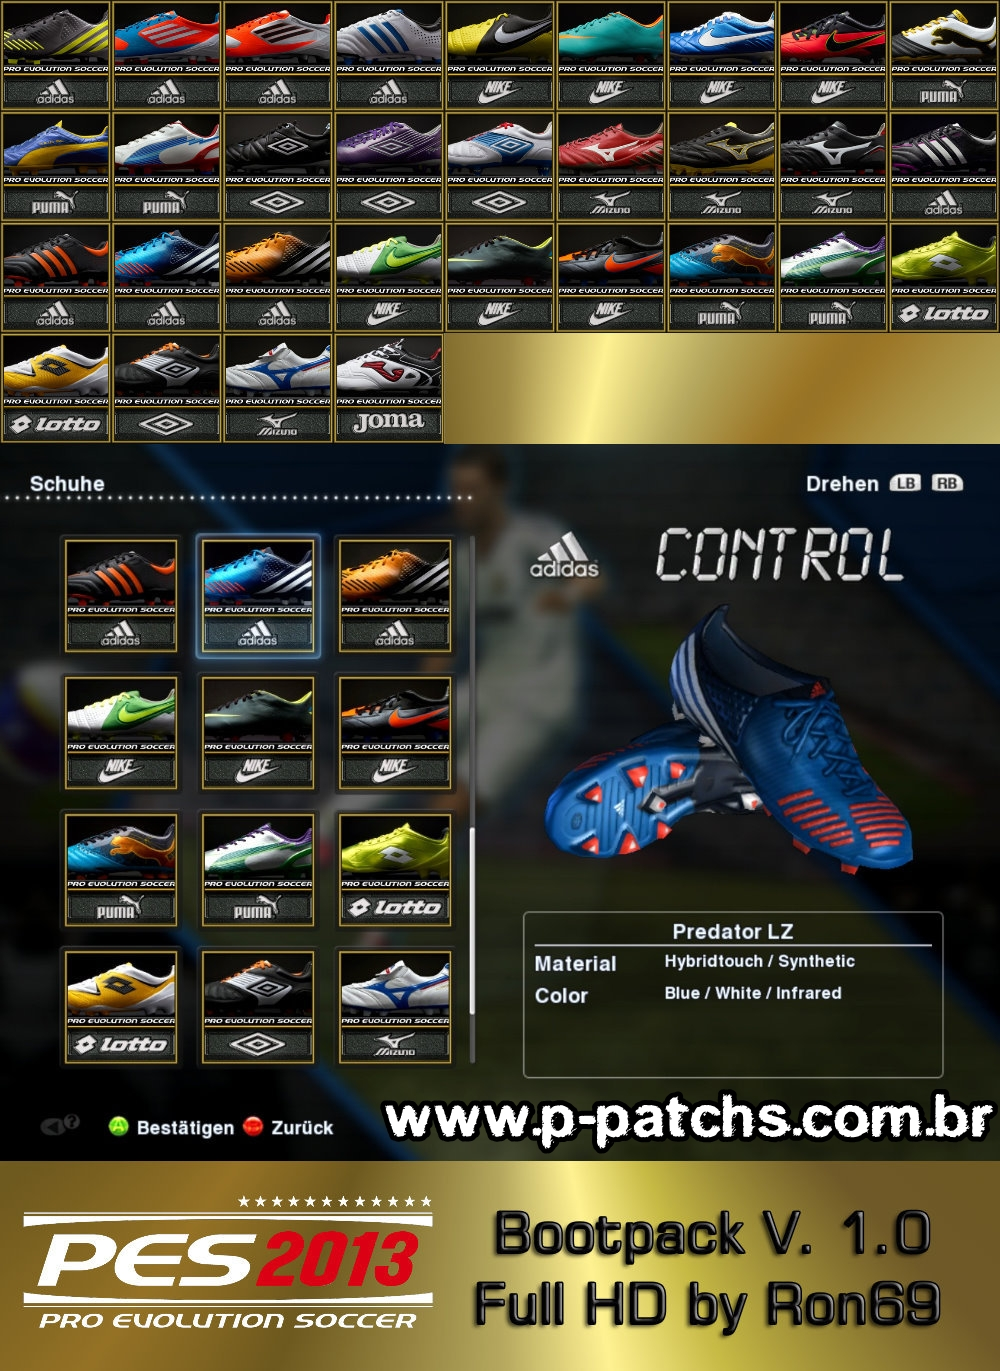 Bootpack v1.0 Full HD - PES 2013